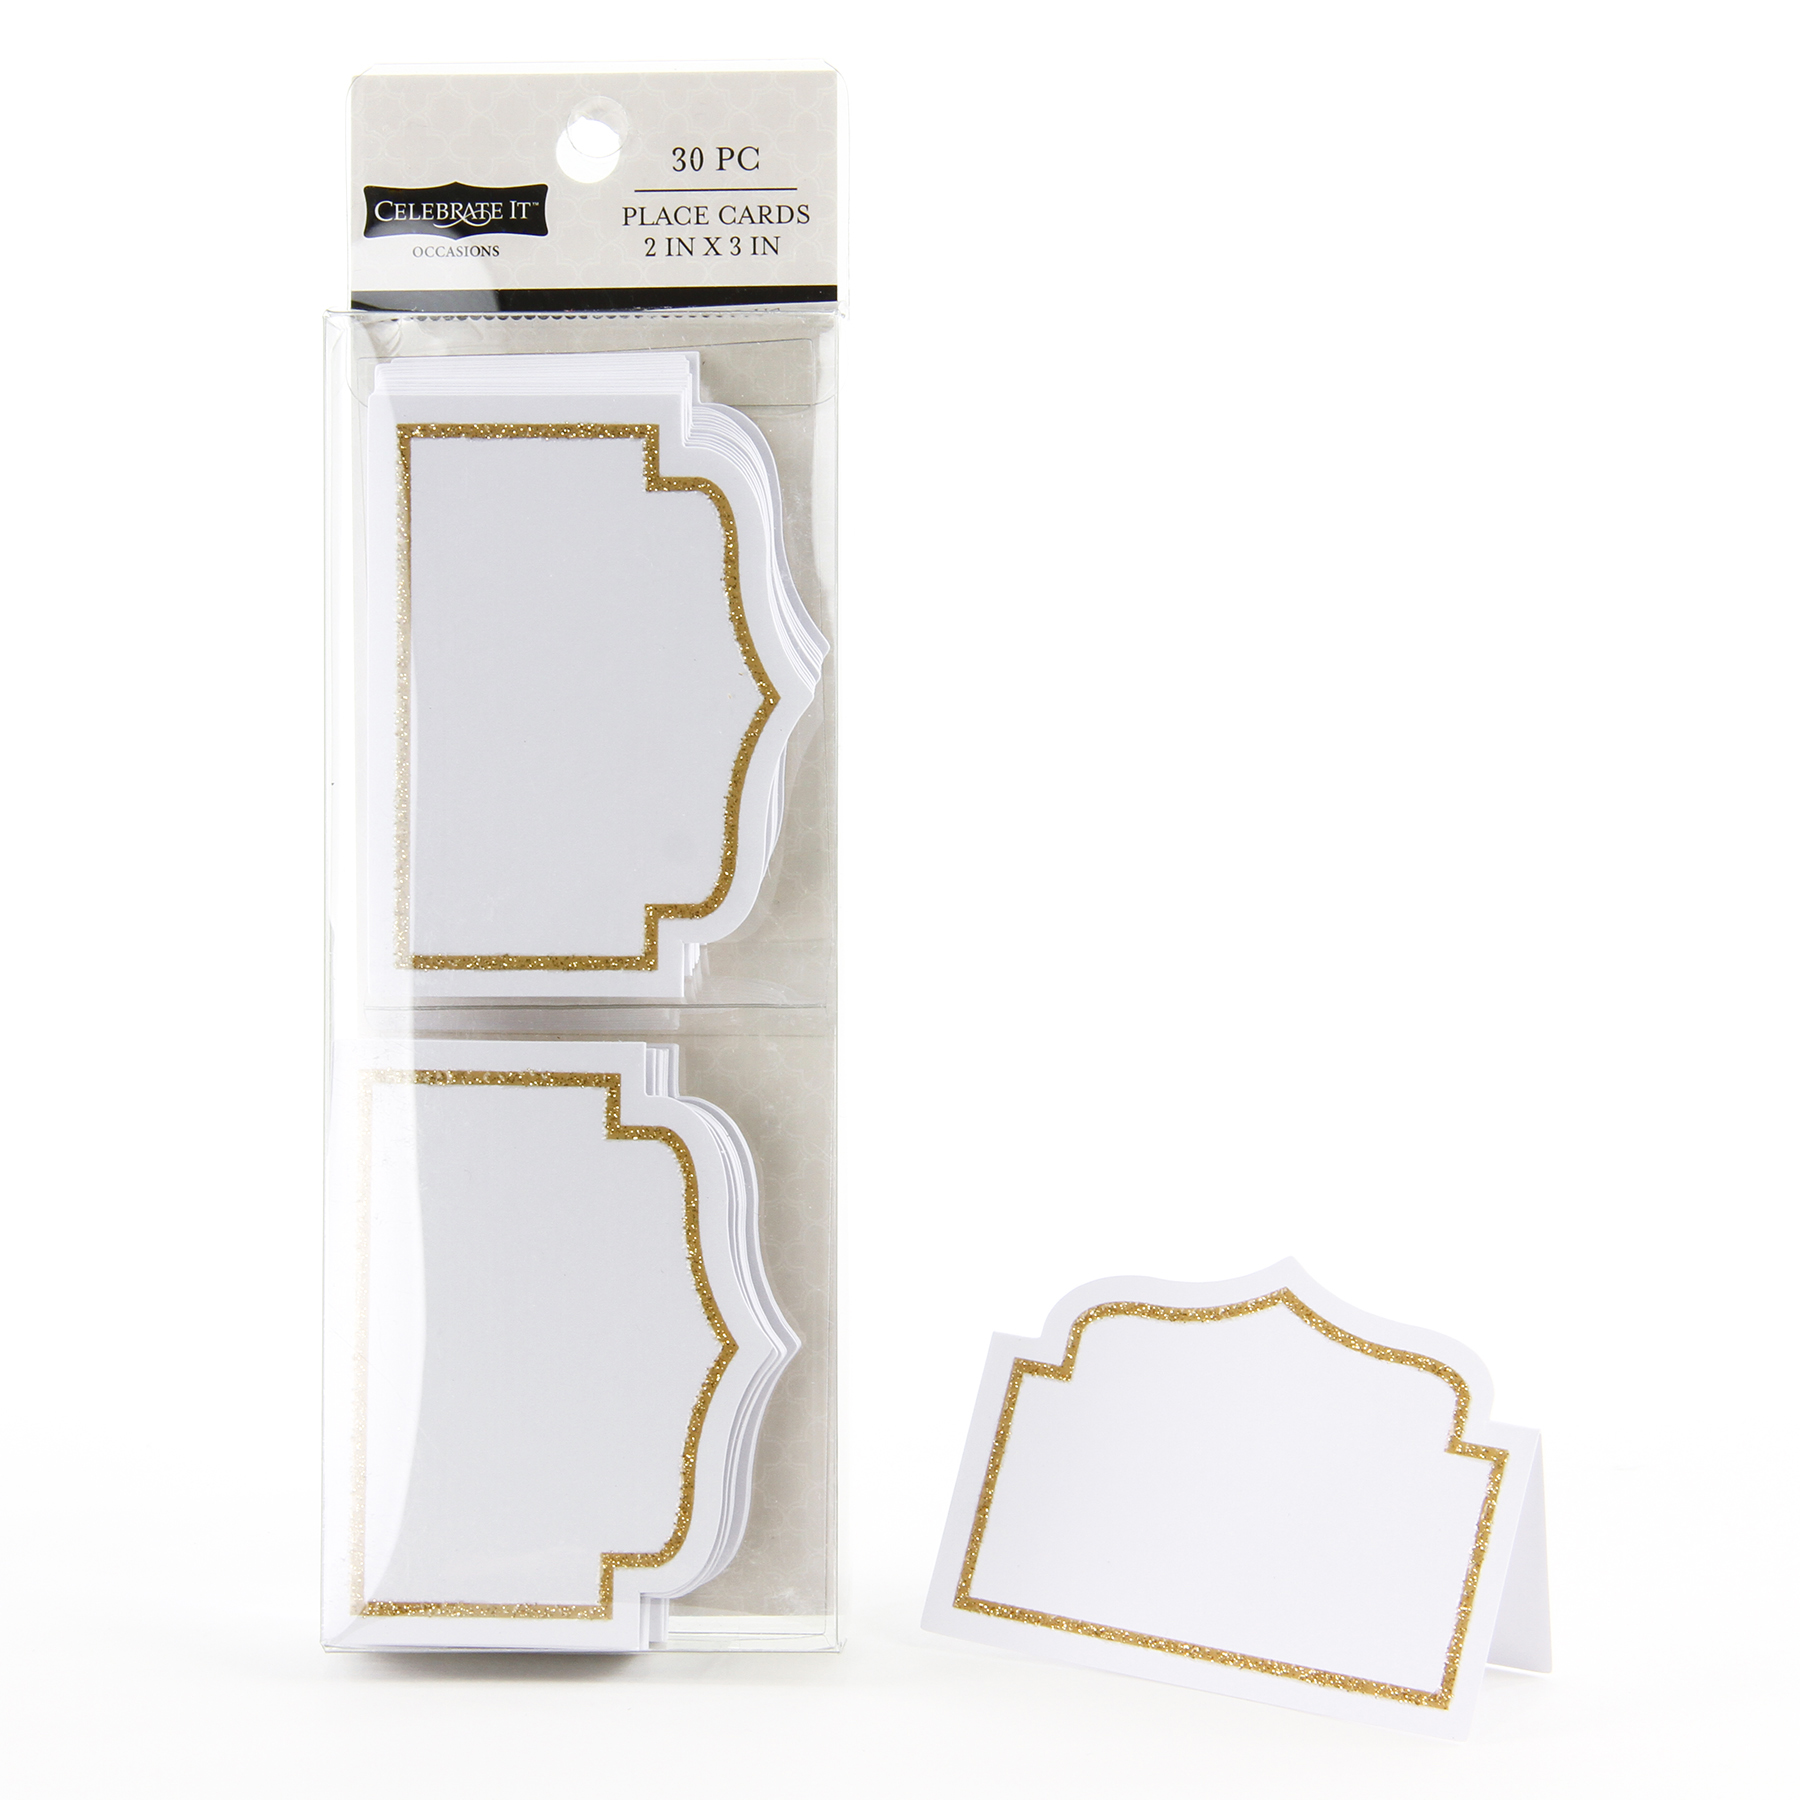 celebrate it occasions place cards gold glitter border